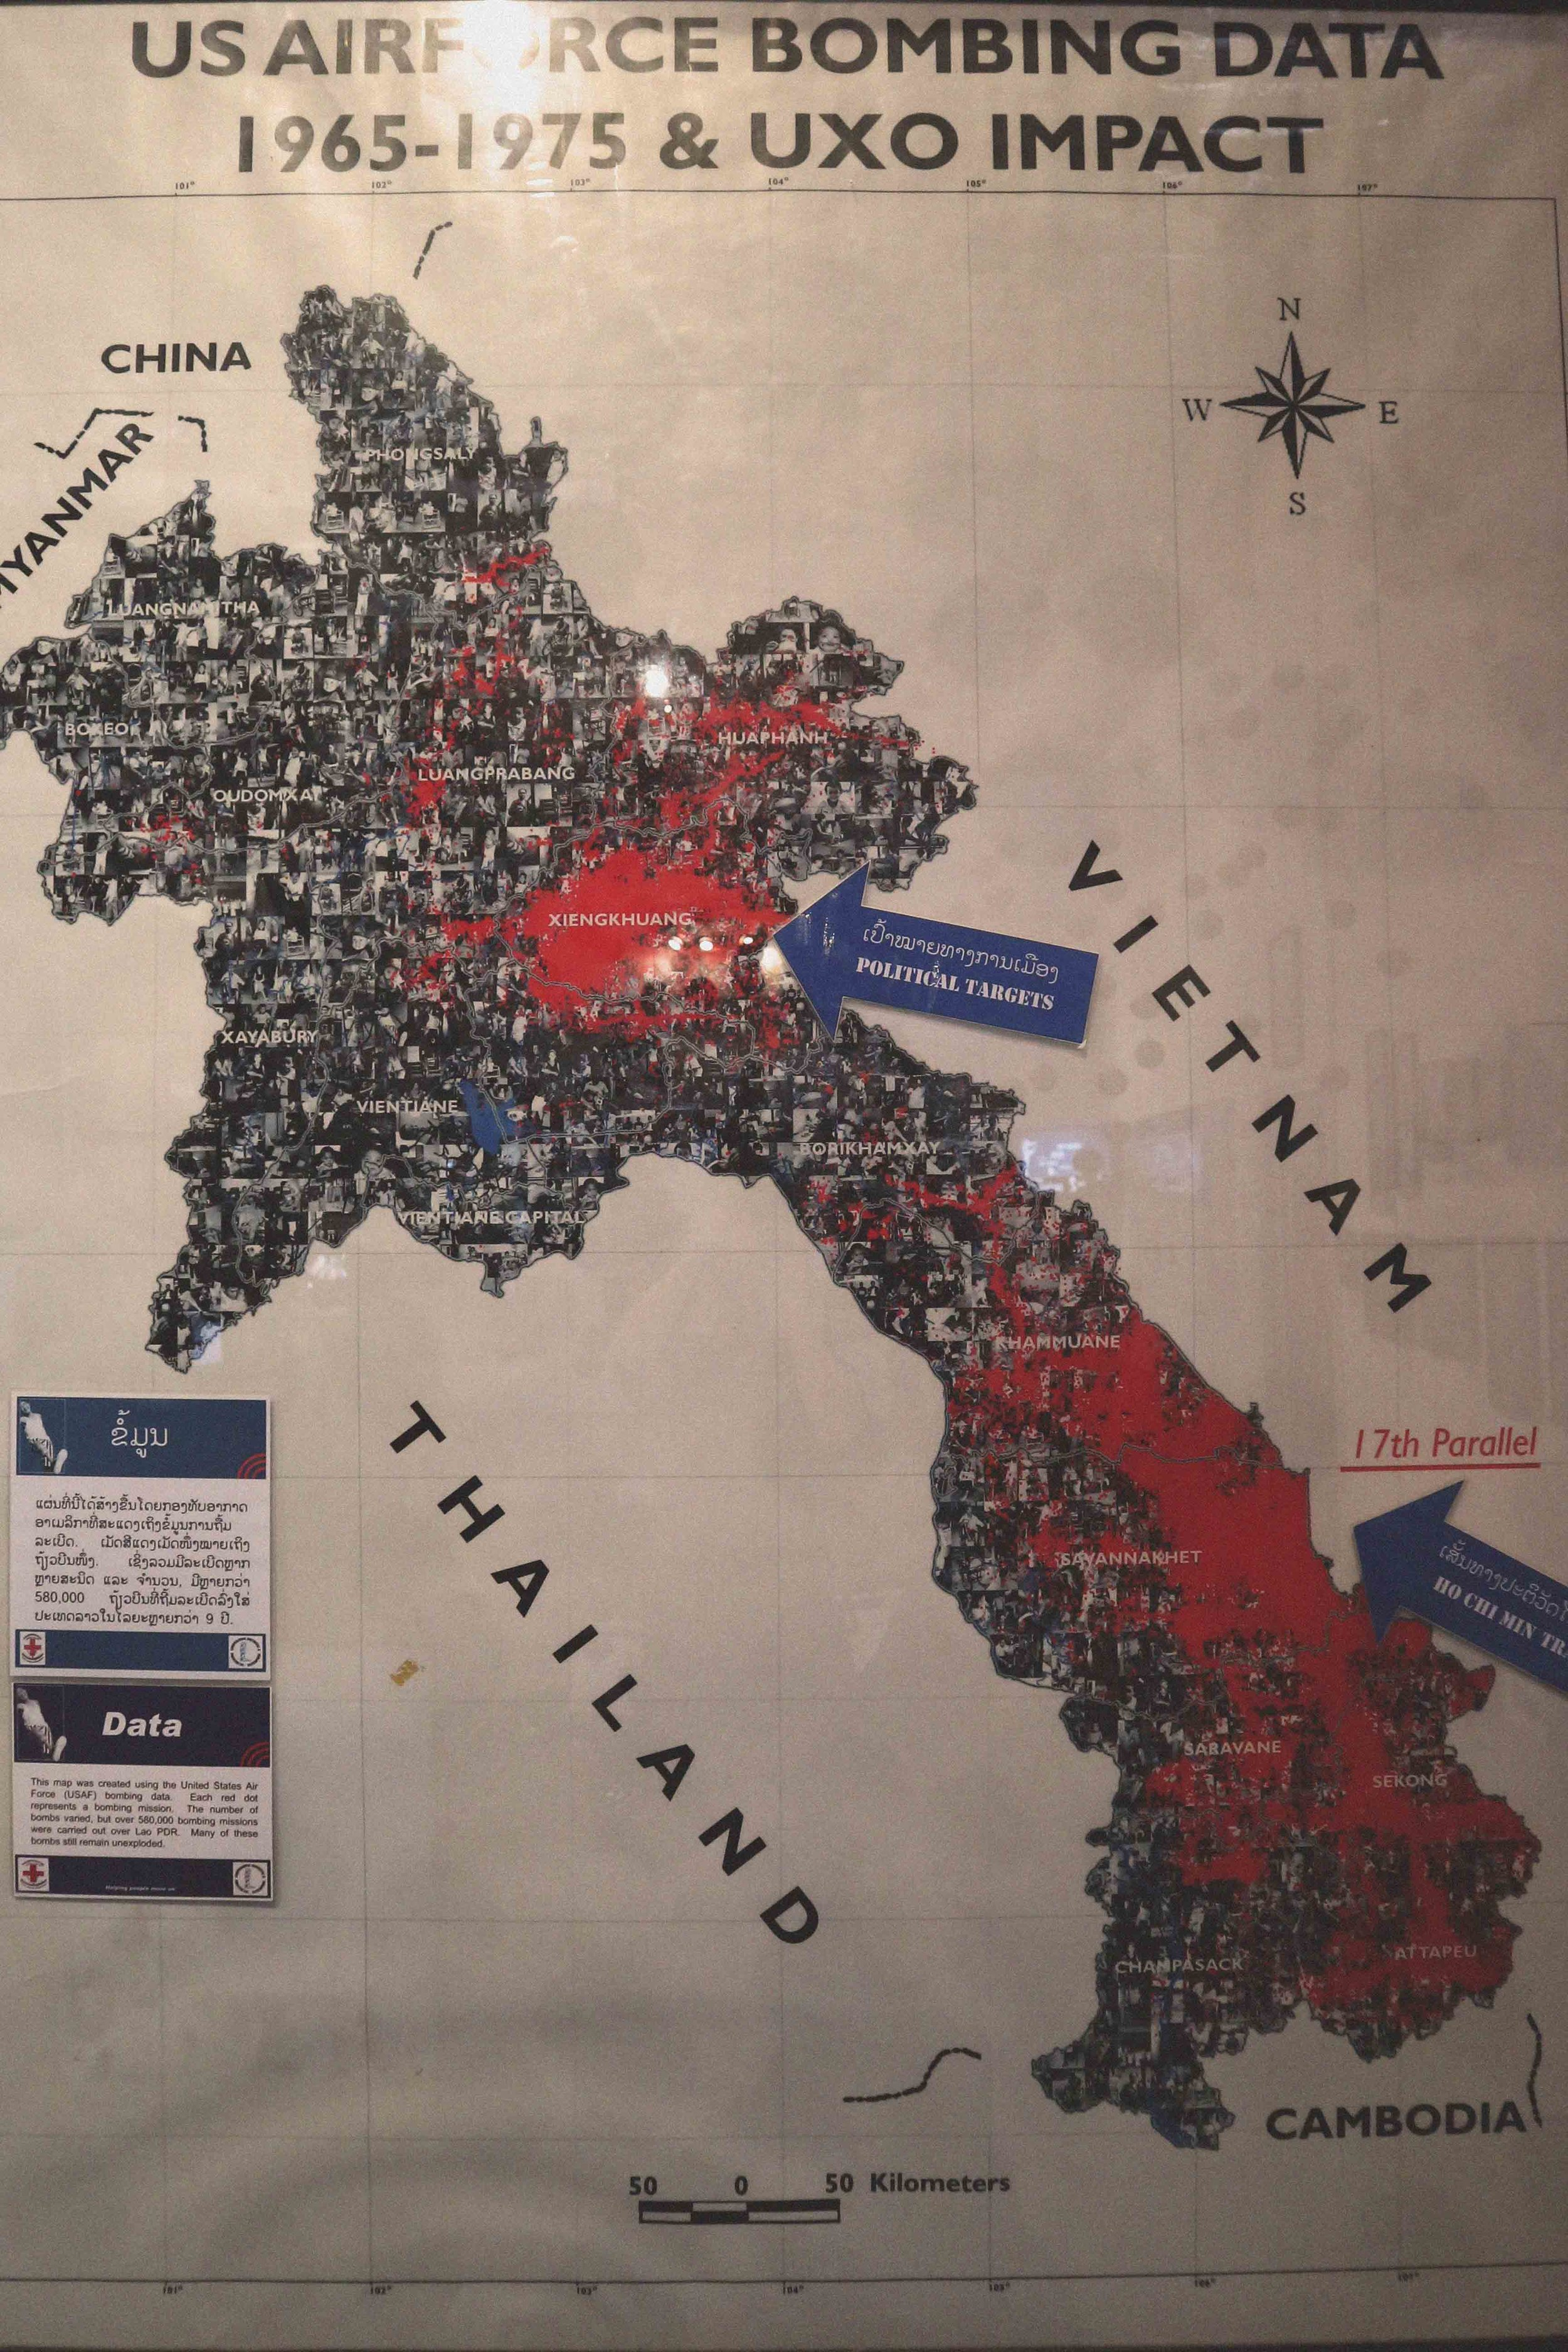 Red marks the places affected by US bomb strikes on Laos during the Vietnam war